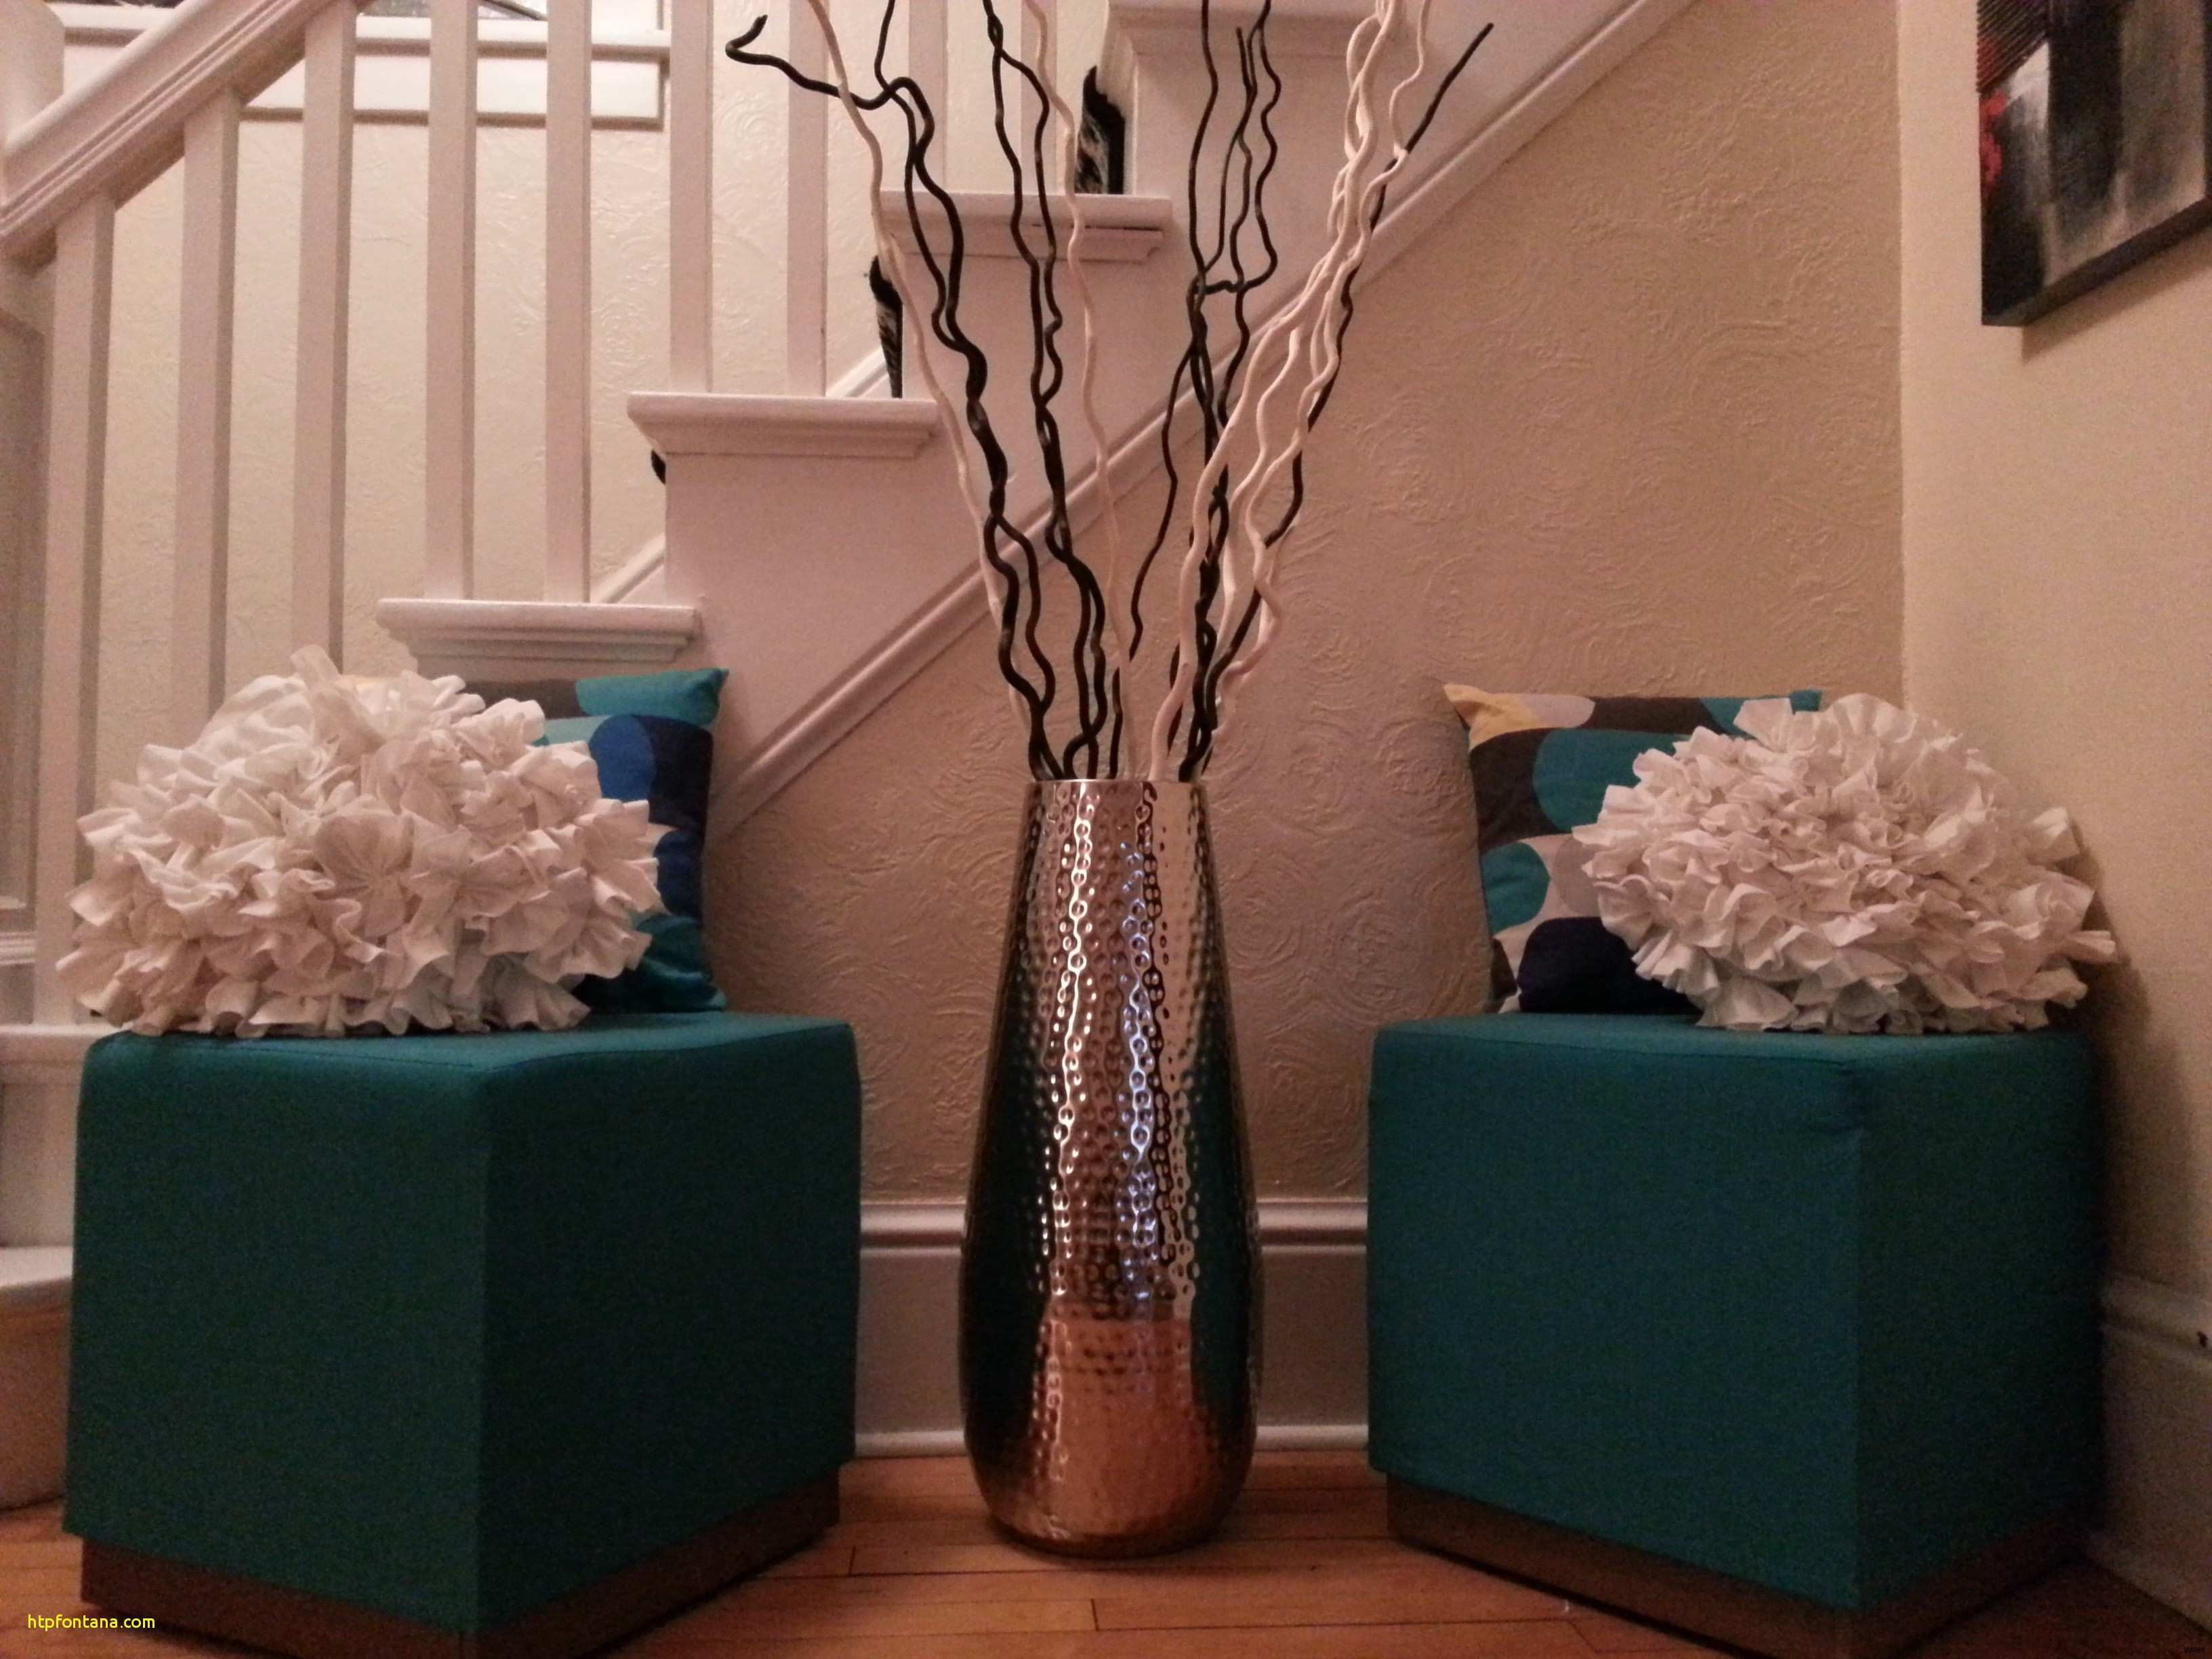 tall vase arrangements branches of decorating ideas for vases elegant il fullxfull nny9h vases flower intended for decorating ideas for vases elegant modern living room vases beautiful flower vase for decoration idea of